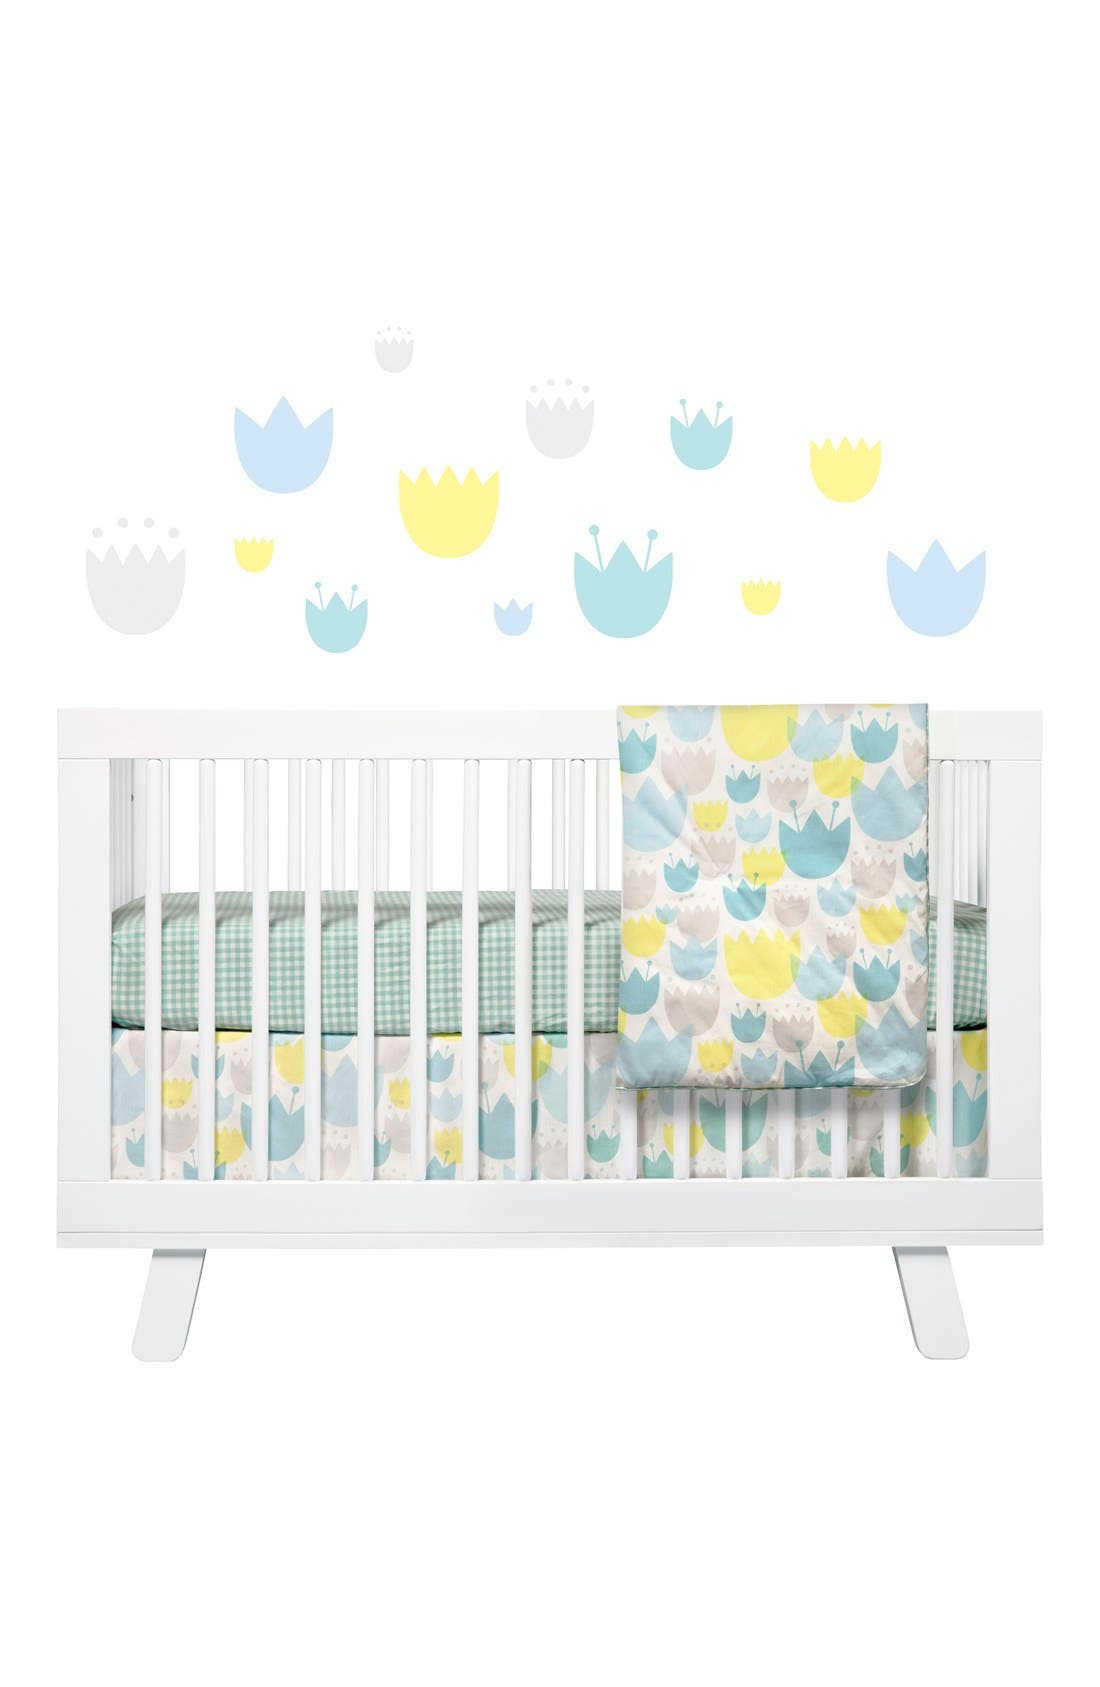 'Garden' Crib Sheet, Crib Skirt, Changing Pad Cover, Play Blanket & Wall Decals,                             Main thumbnail 1, color,                             BLUE